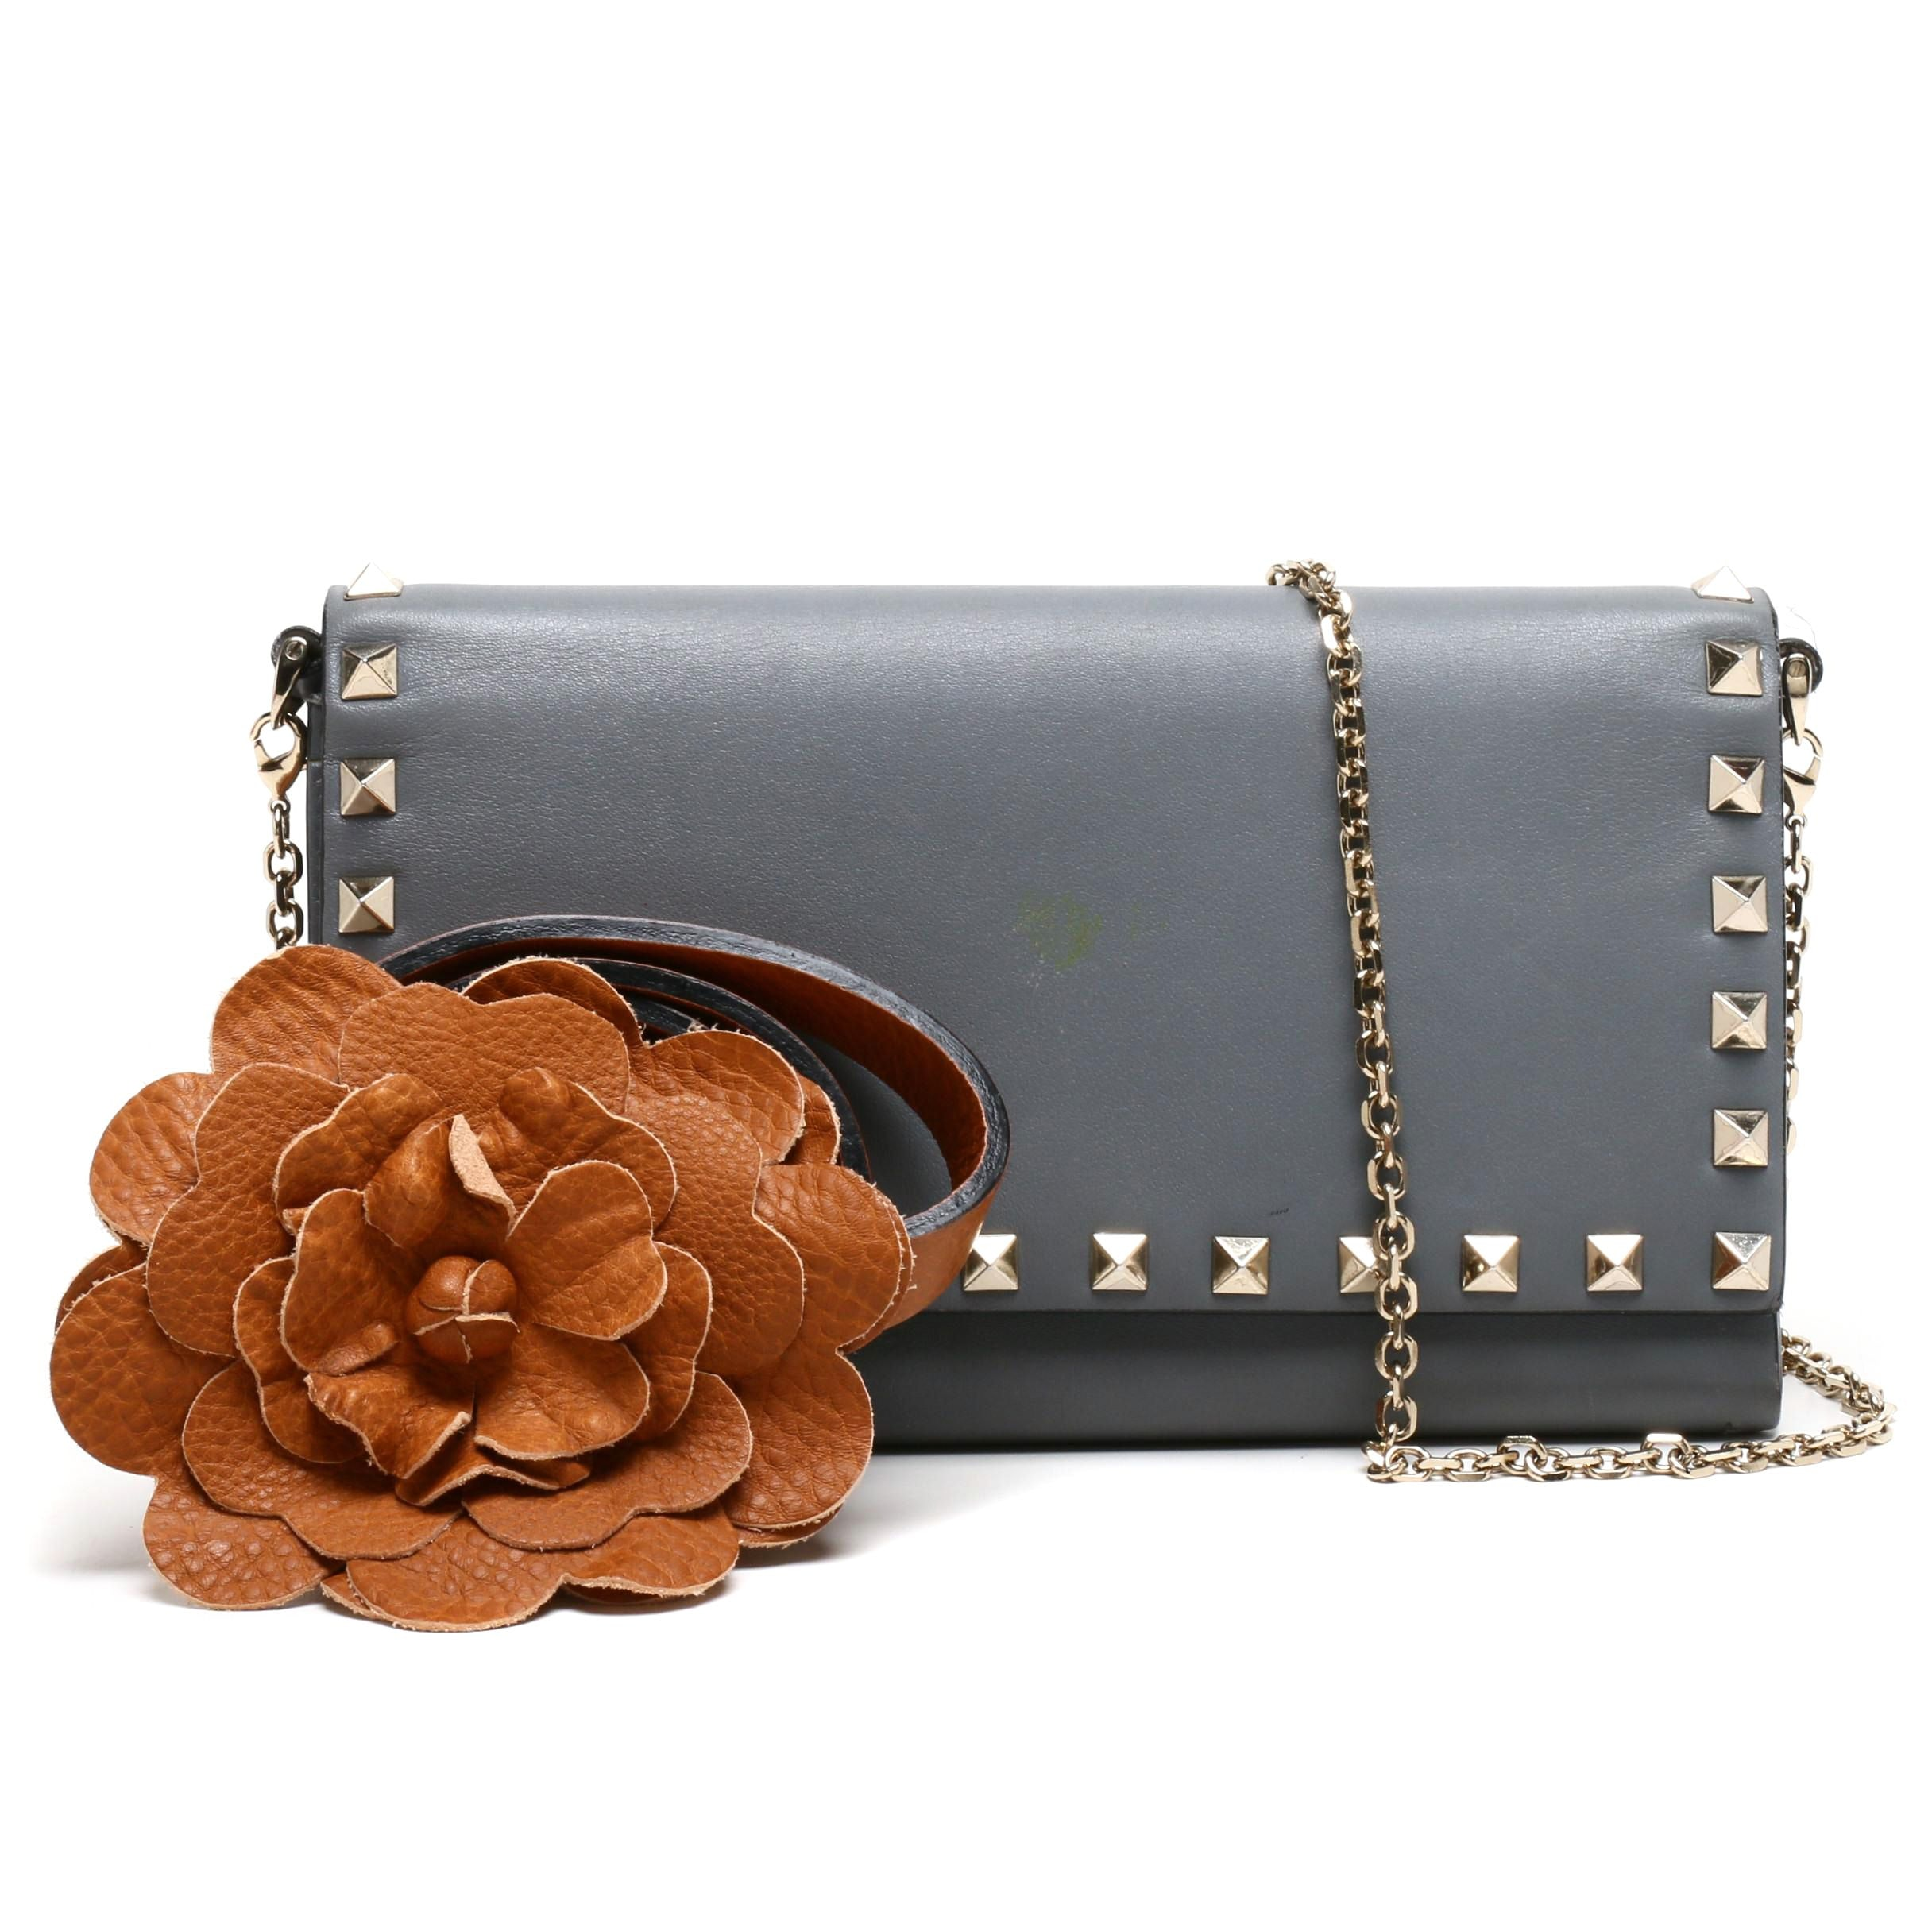 Valentino Garavani Gray Leather Rockstud Wallet on Chain Strap and Flower Belt